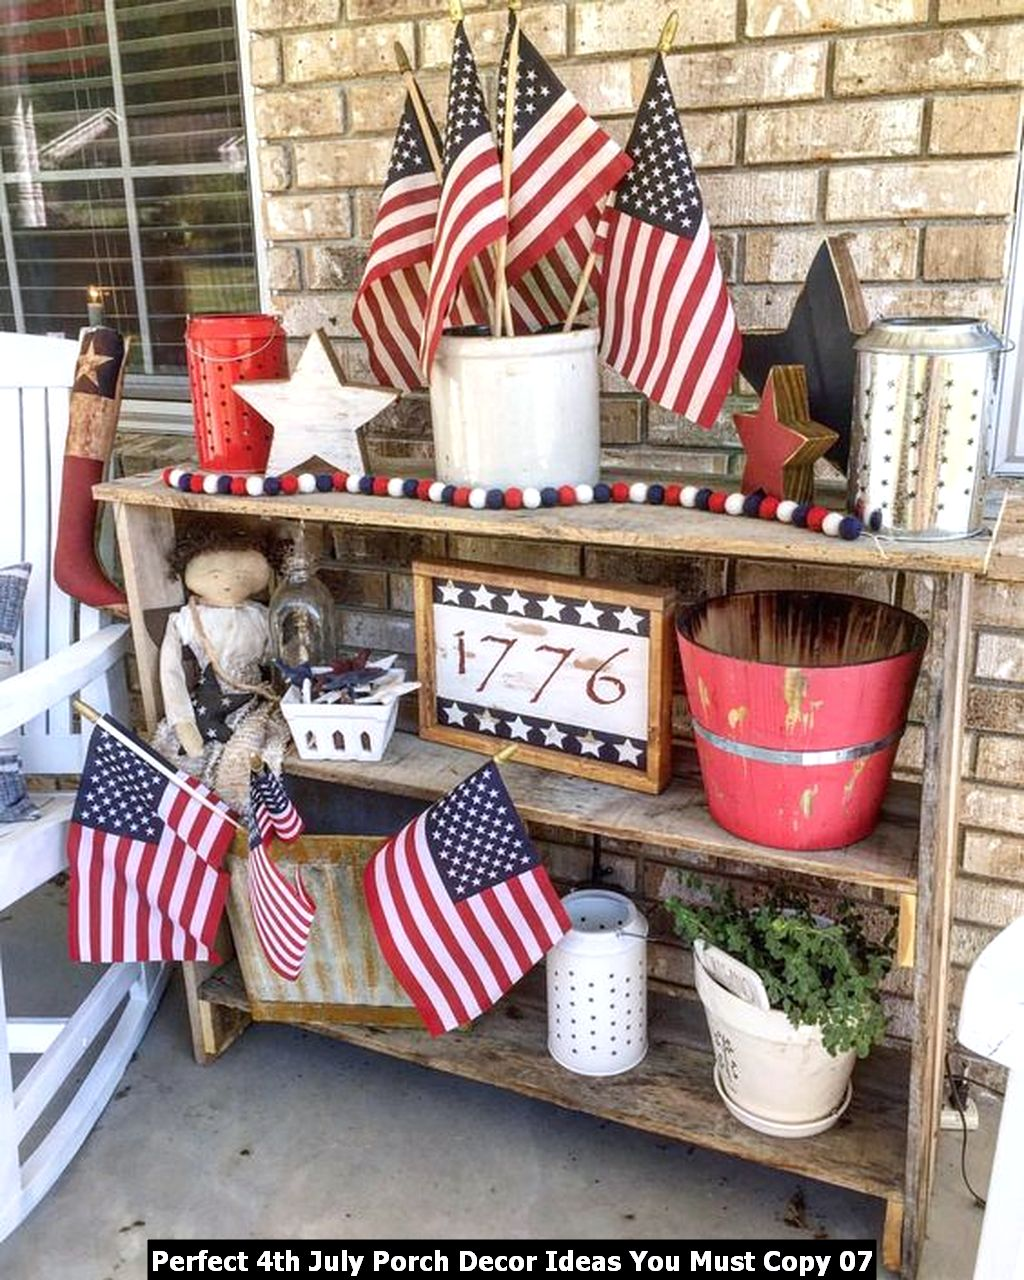 Perfect 4th July Porch Decor Ideas You Must Copy 07